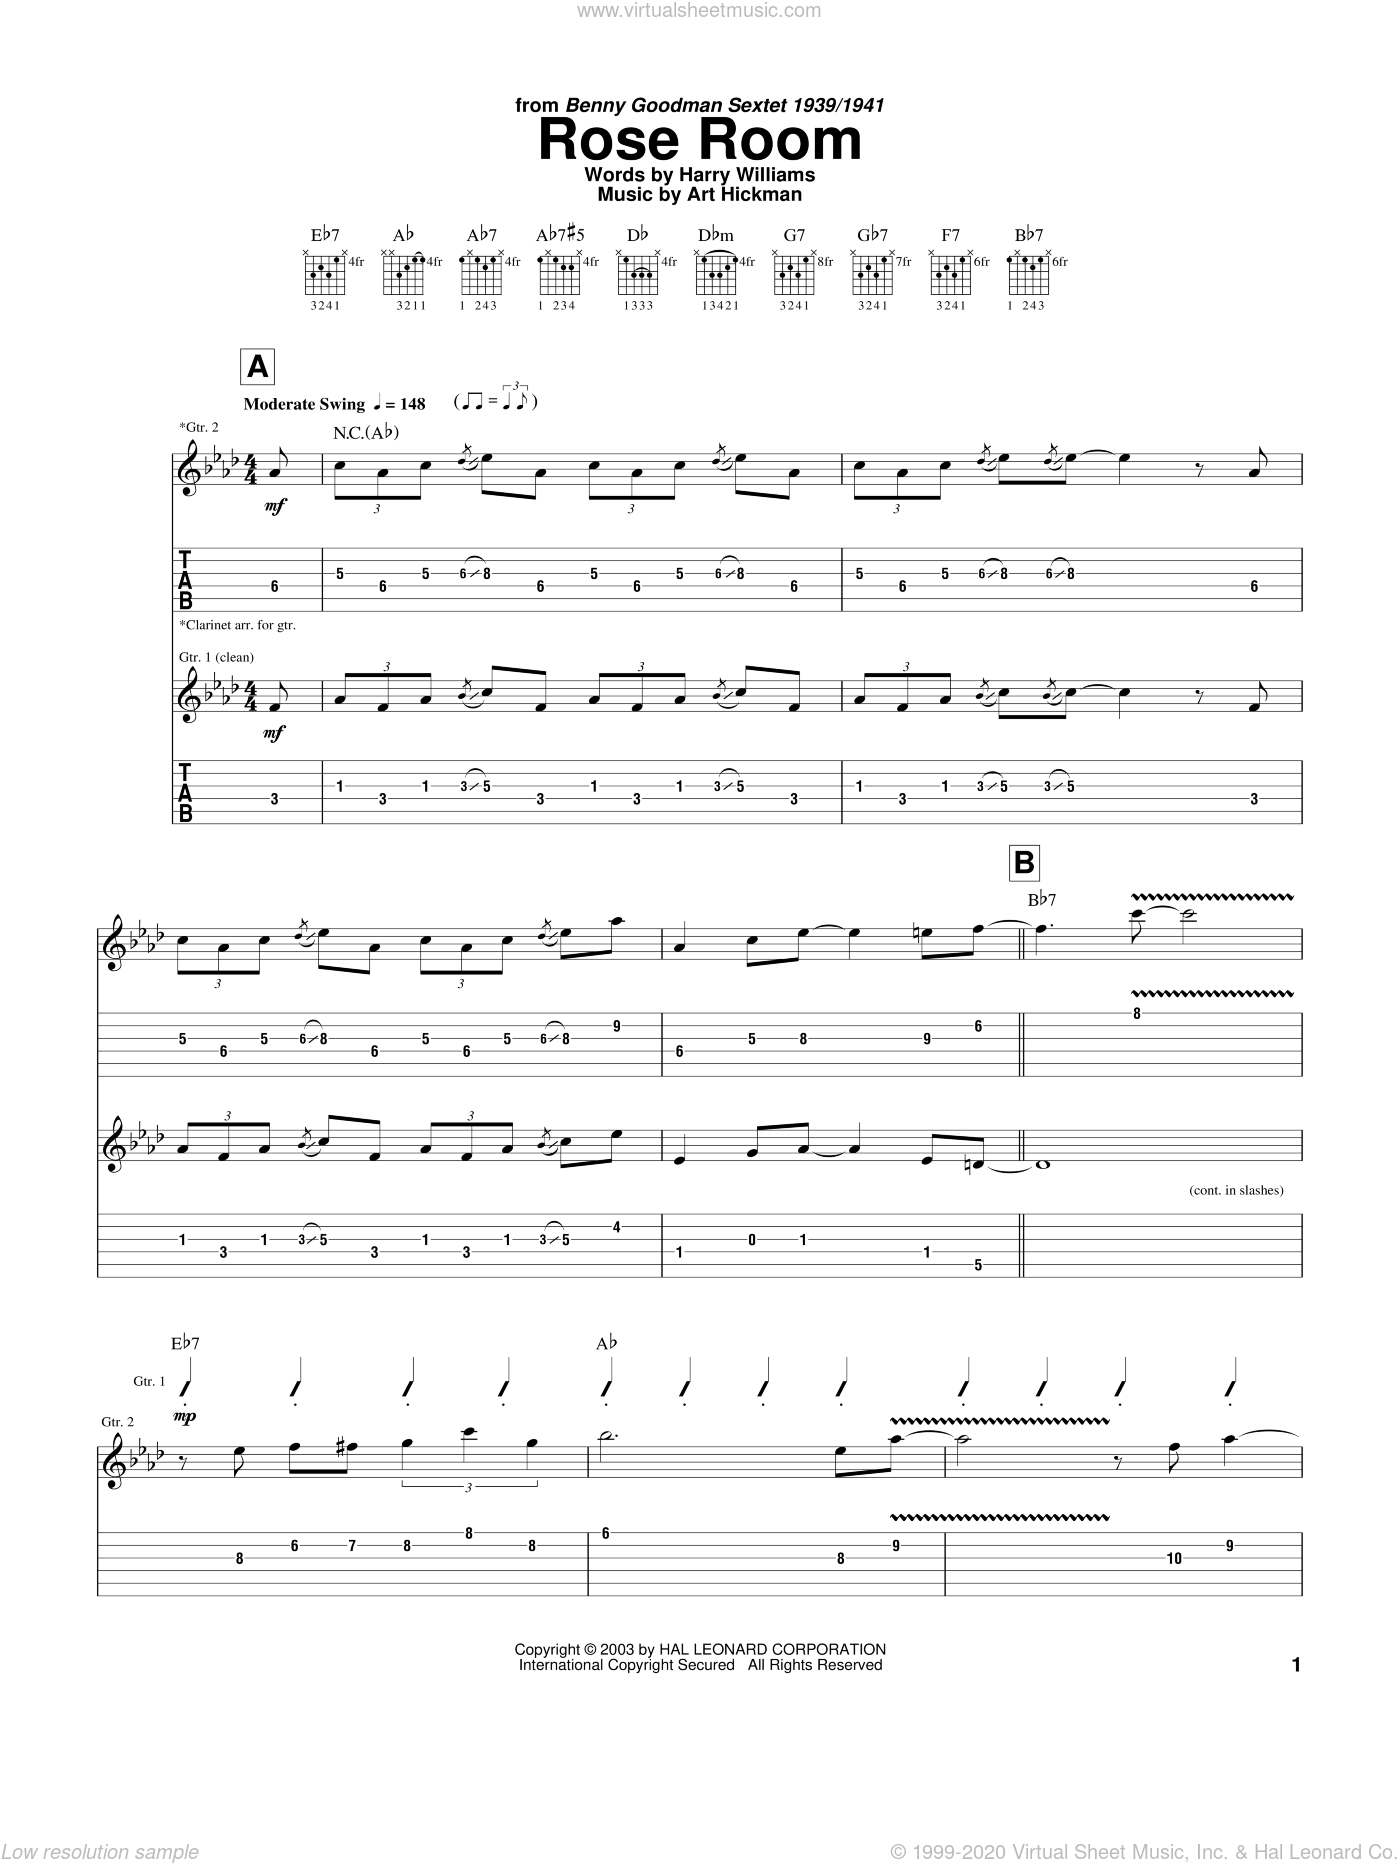 Rose Room sheet music for guitar (tablature) by Charlie Christian, Benny Goodman, Art Hickman and Harry Williams. Score Image Preview.